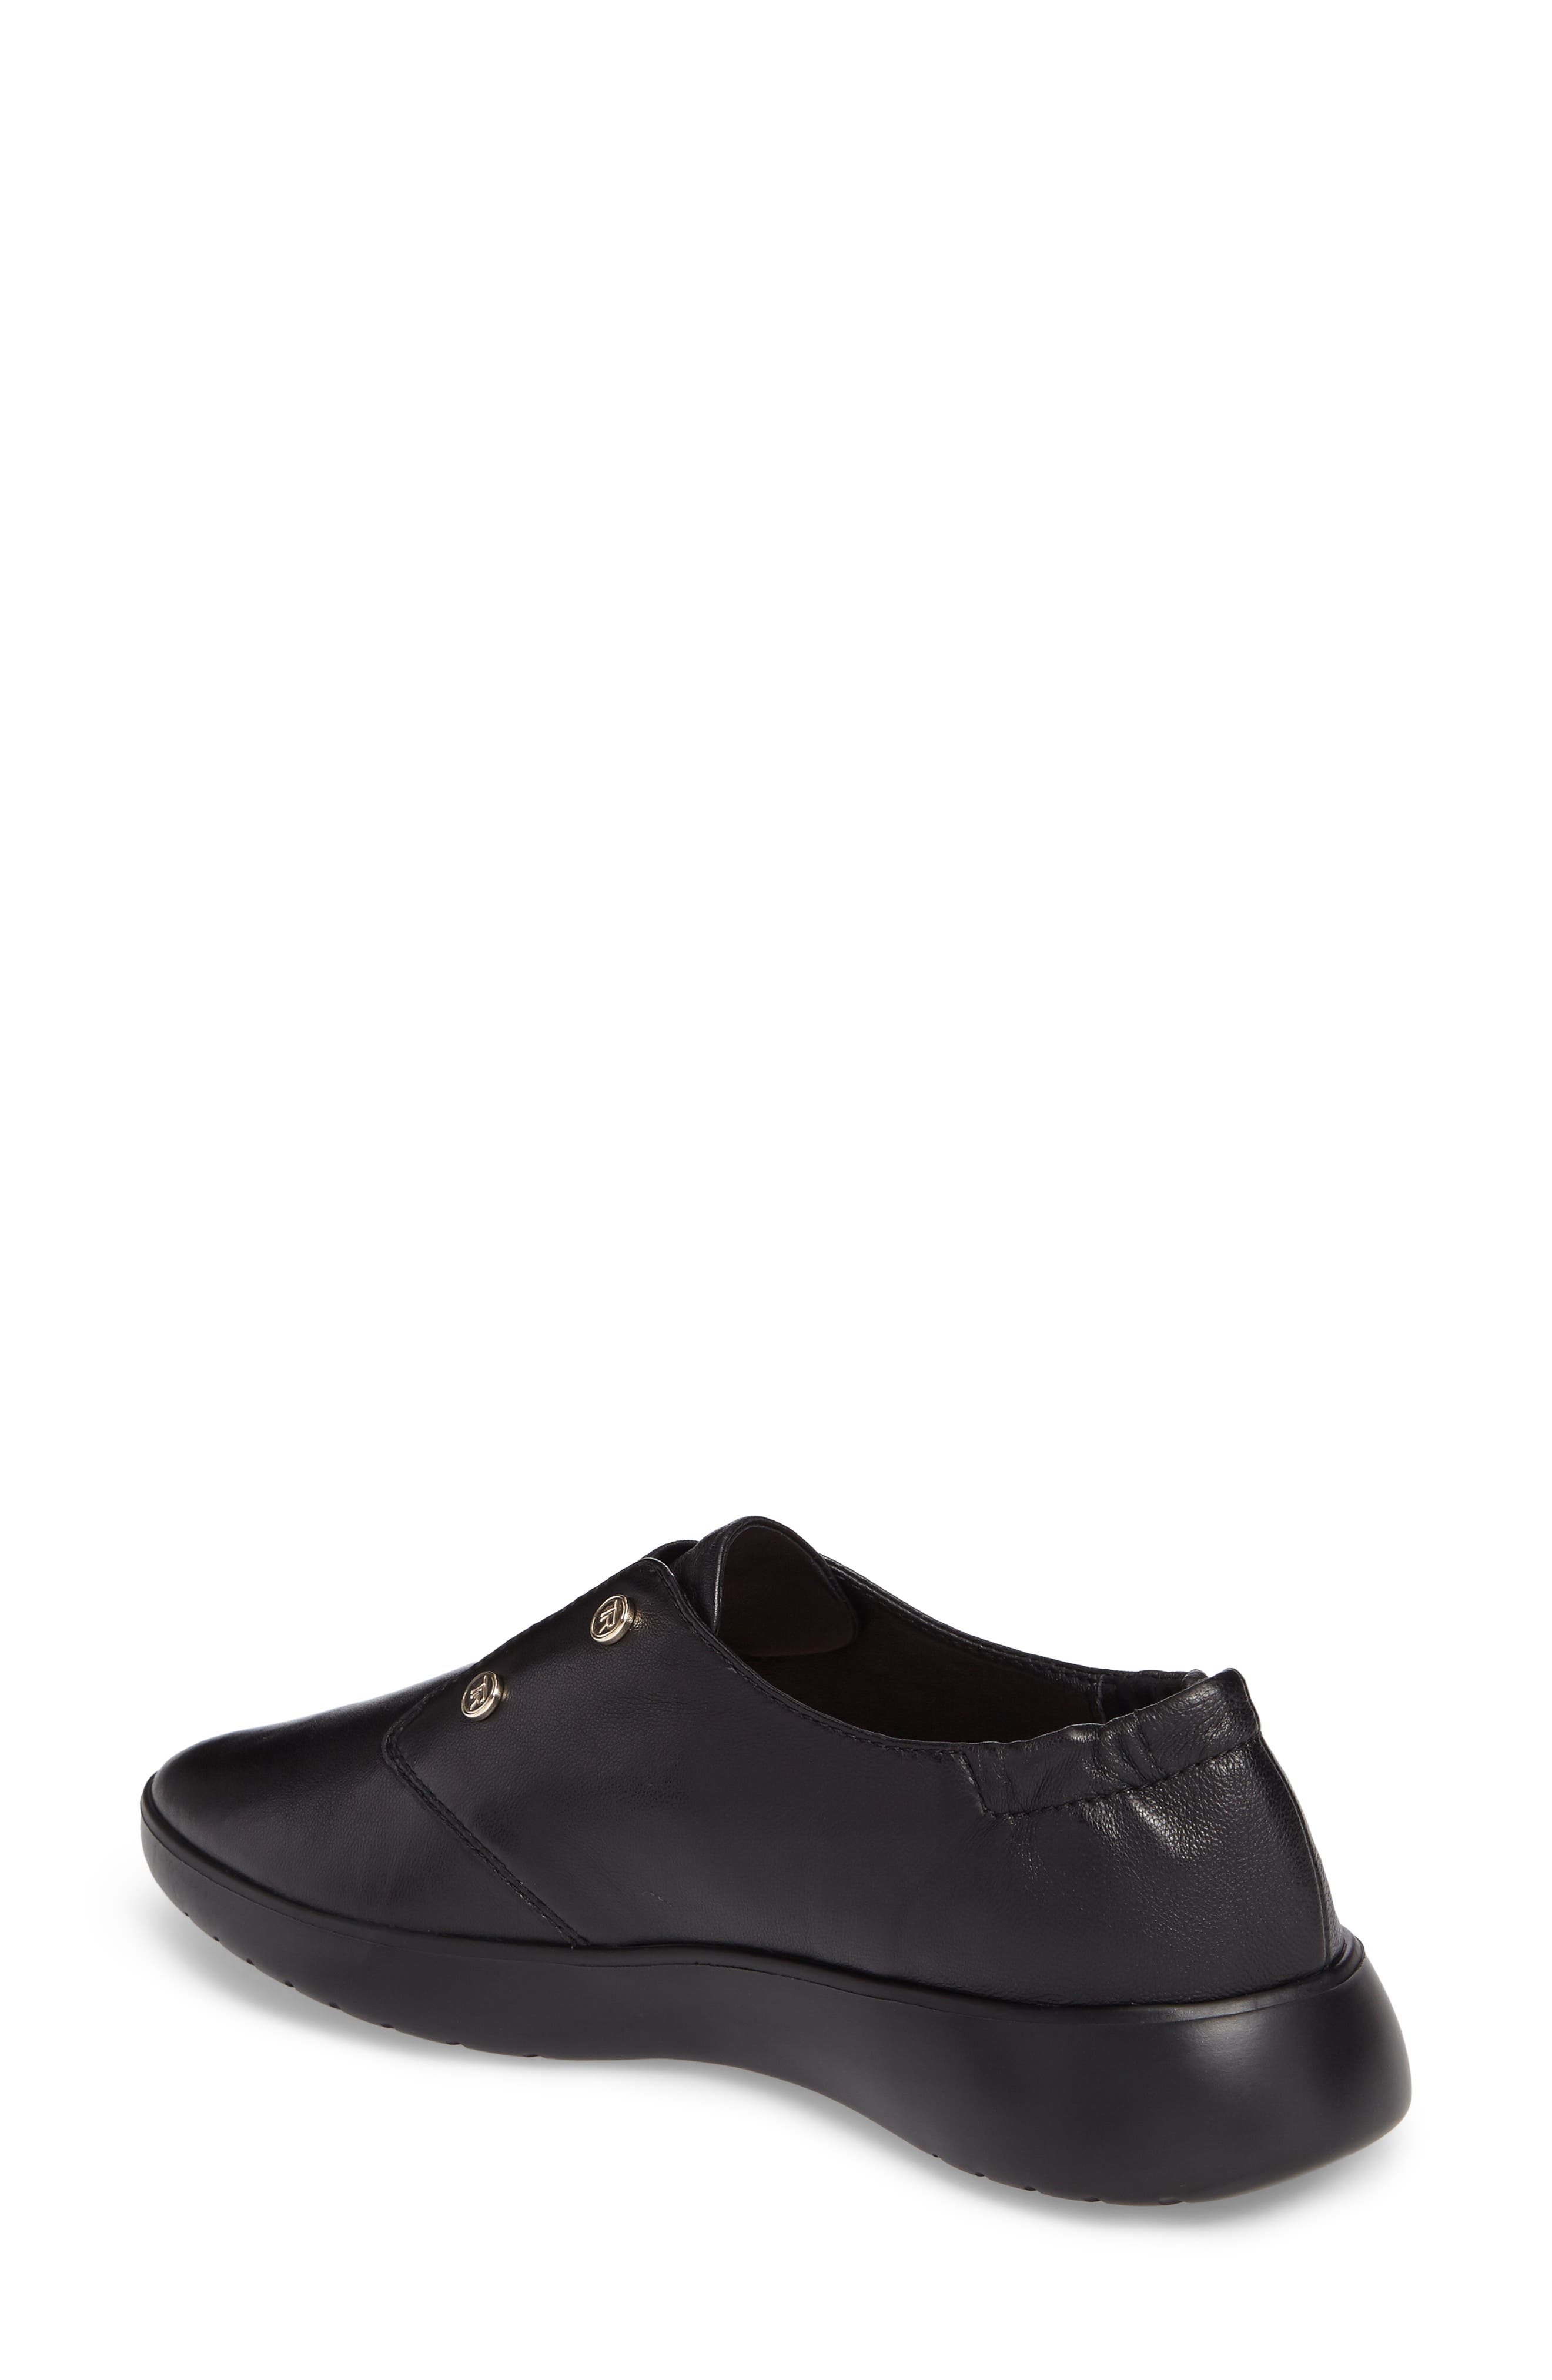 Darcy Slip-On Oxford,                             Alternate thumbnail 2, color,                             004